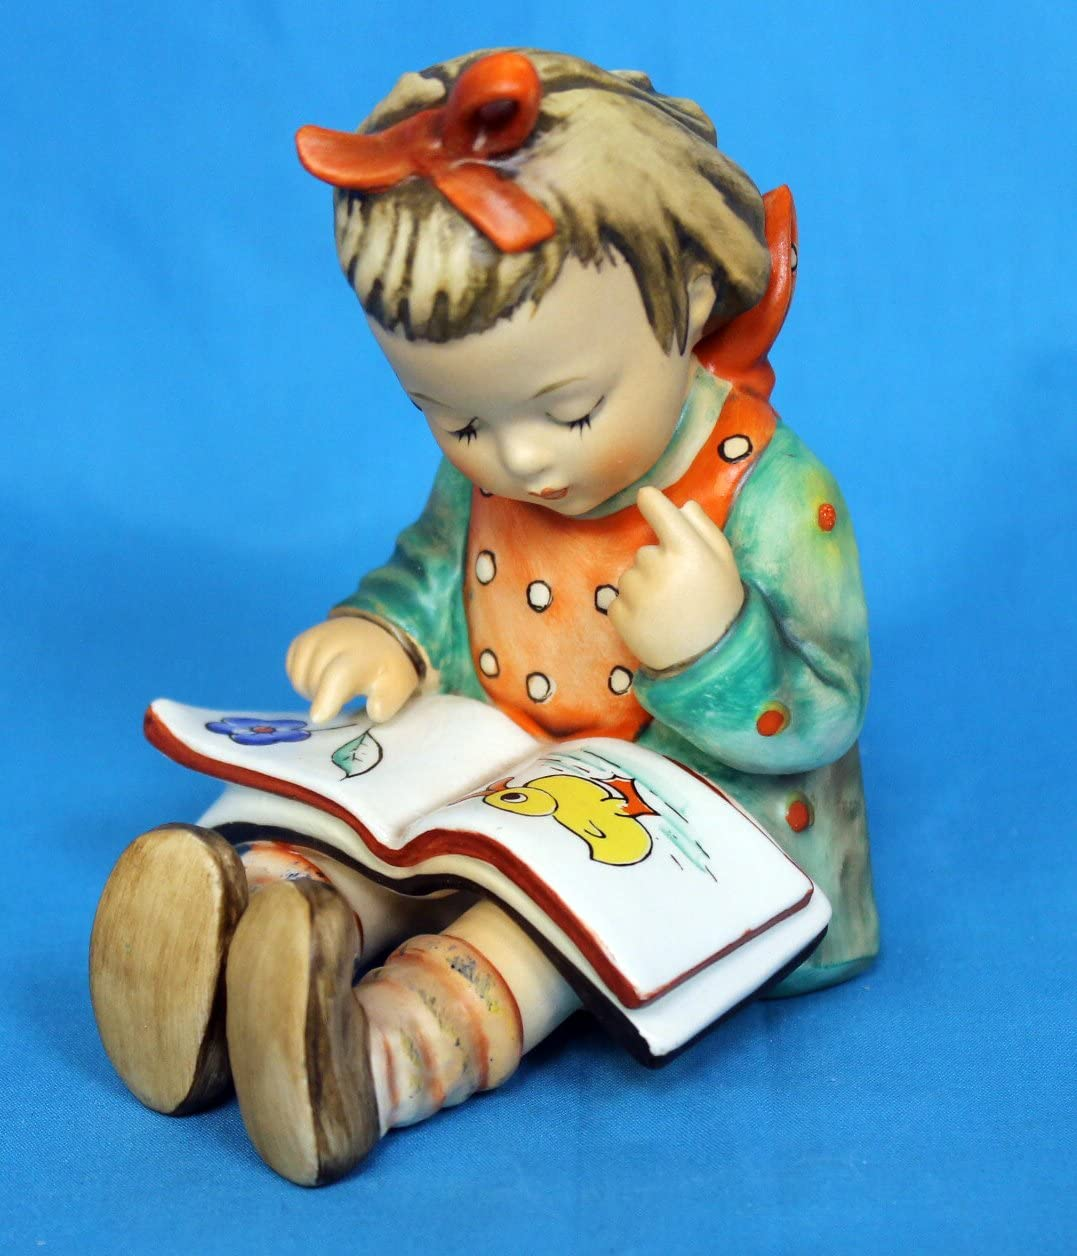 Hummel c1972 HUM8 Book Worm Girl with Book Figurine Reinold Unger – NEGR39